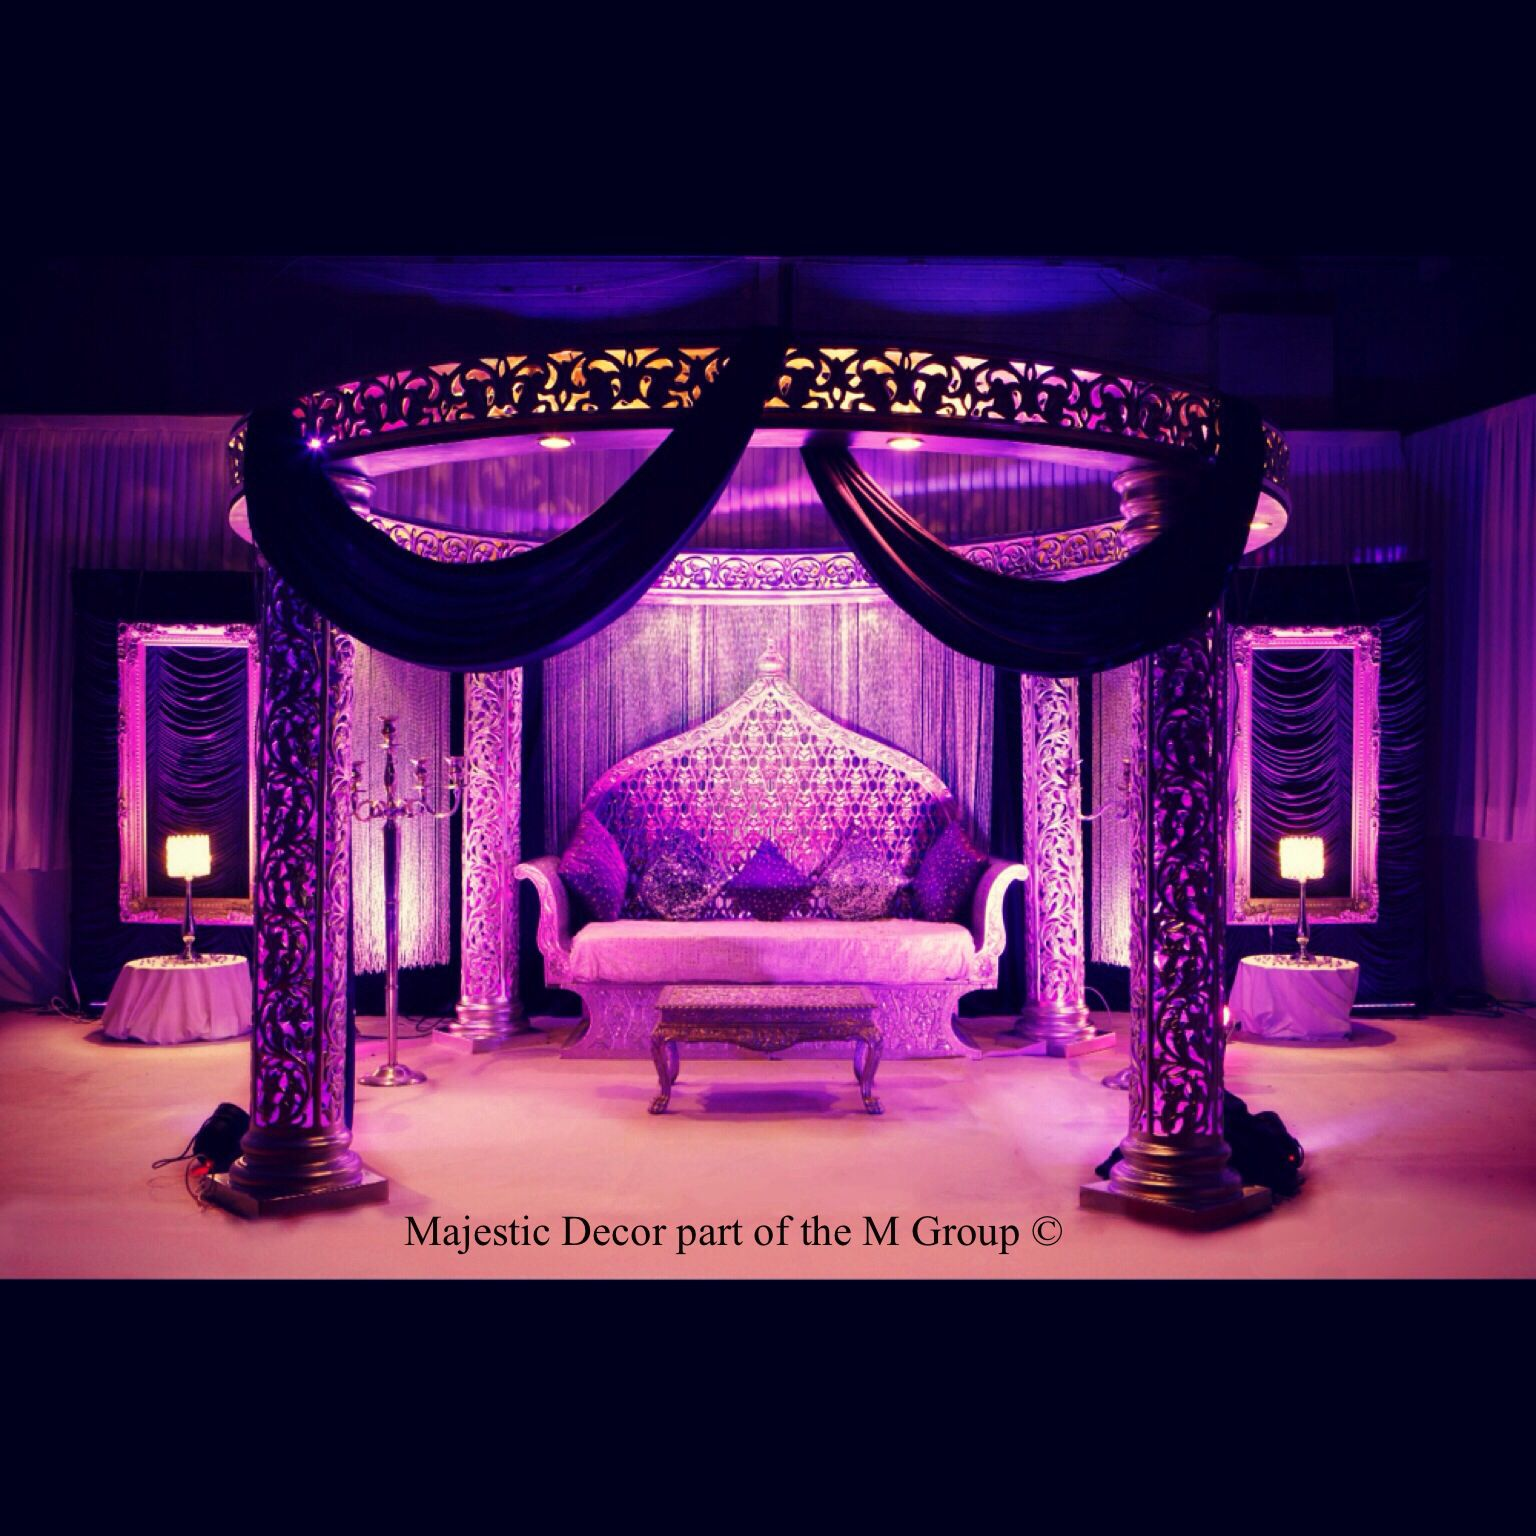 Korean wedding stage decoration  Majestic Regal Collection Every bride wants to feel like royalty on